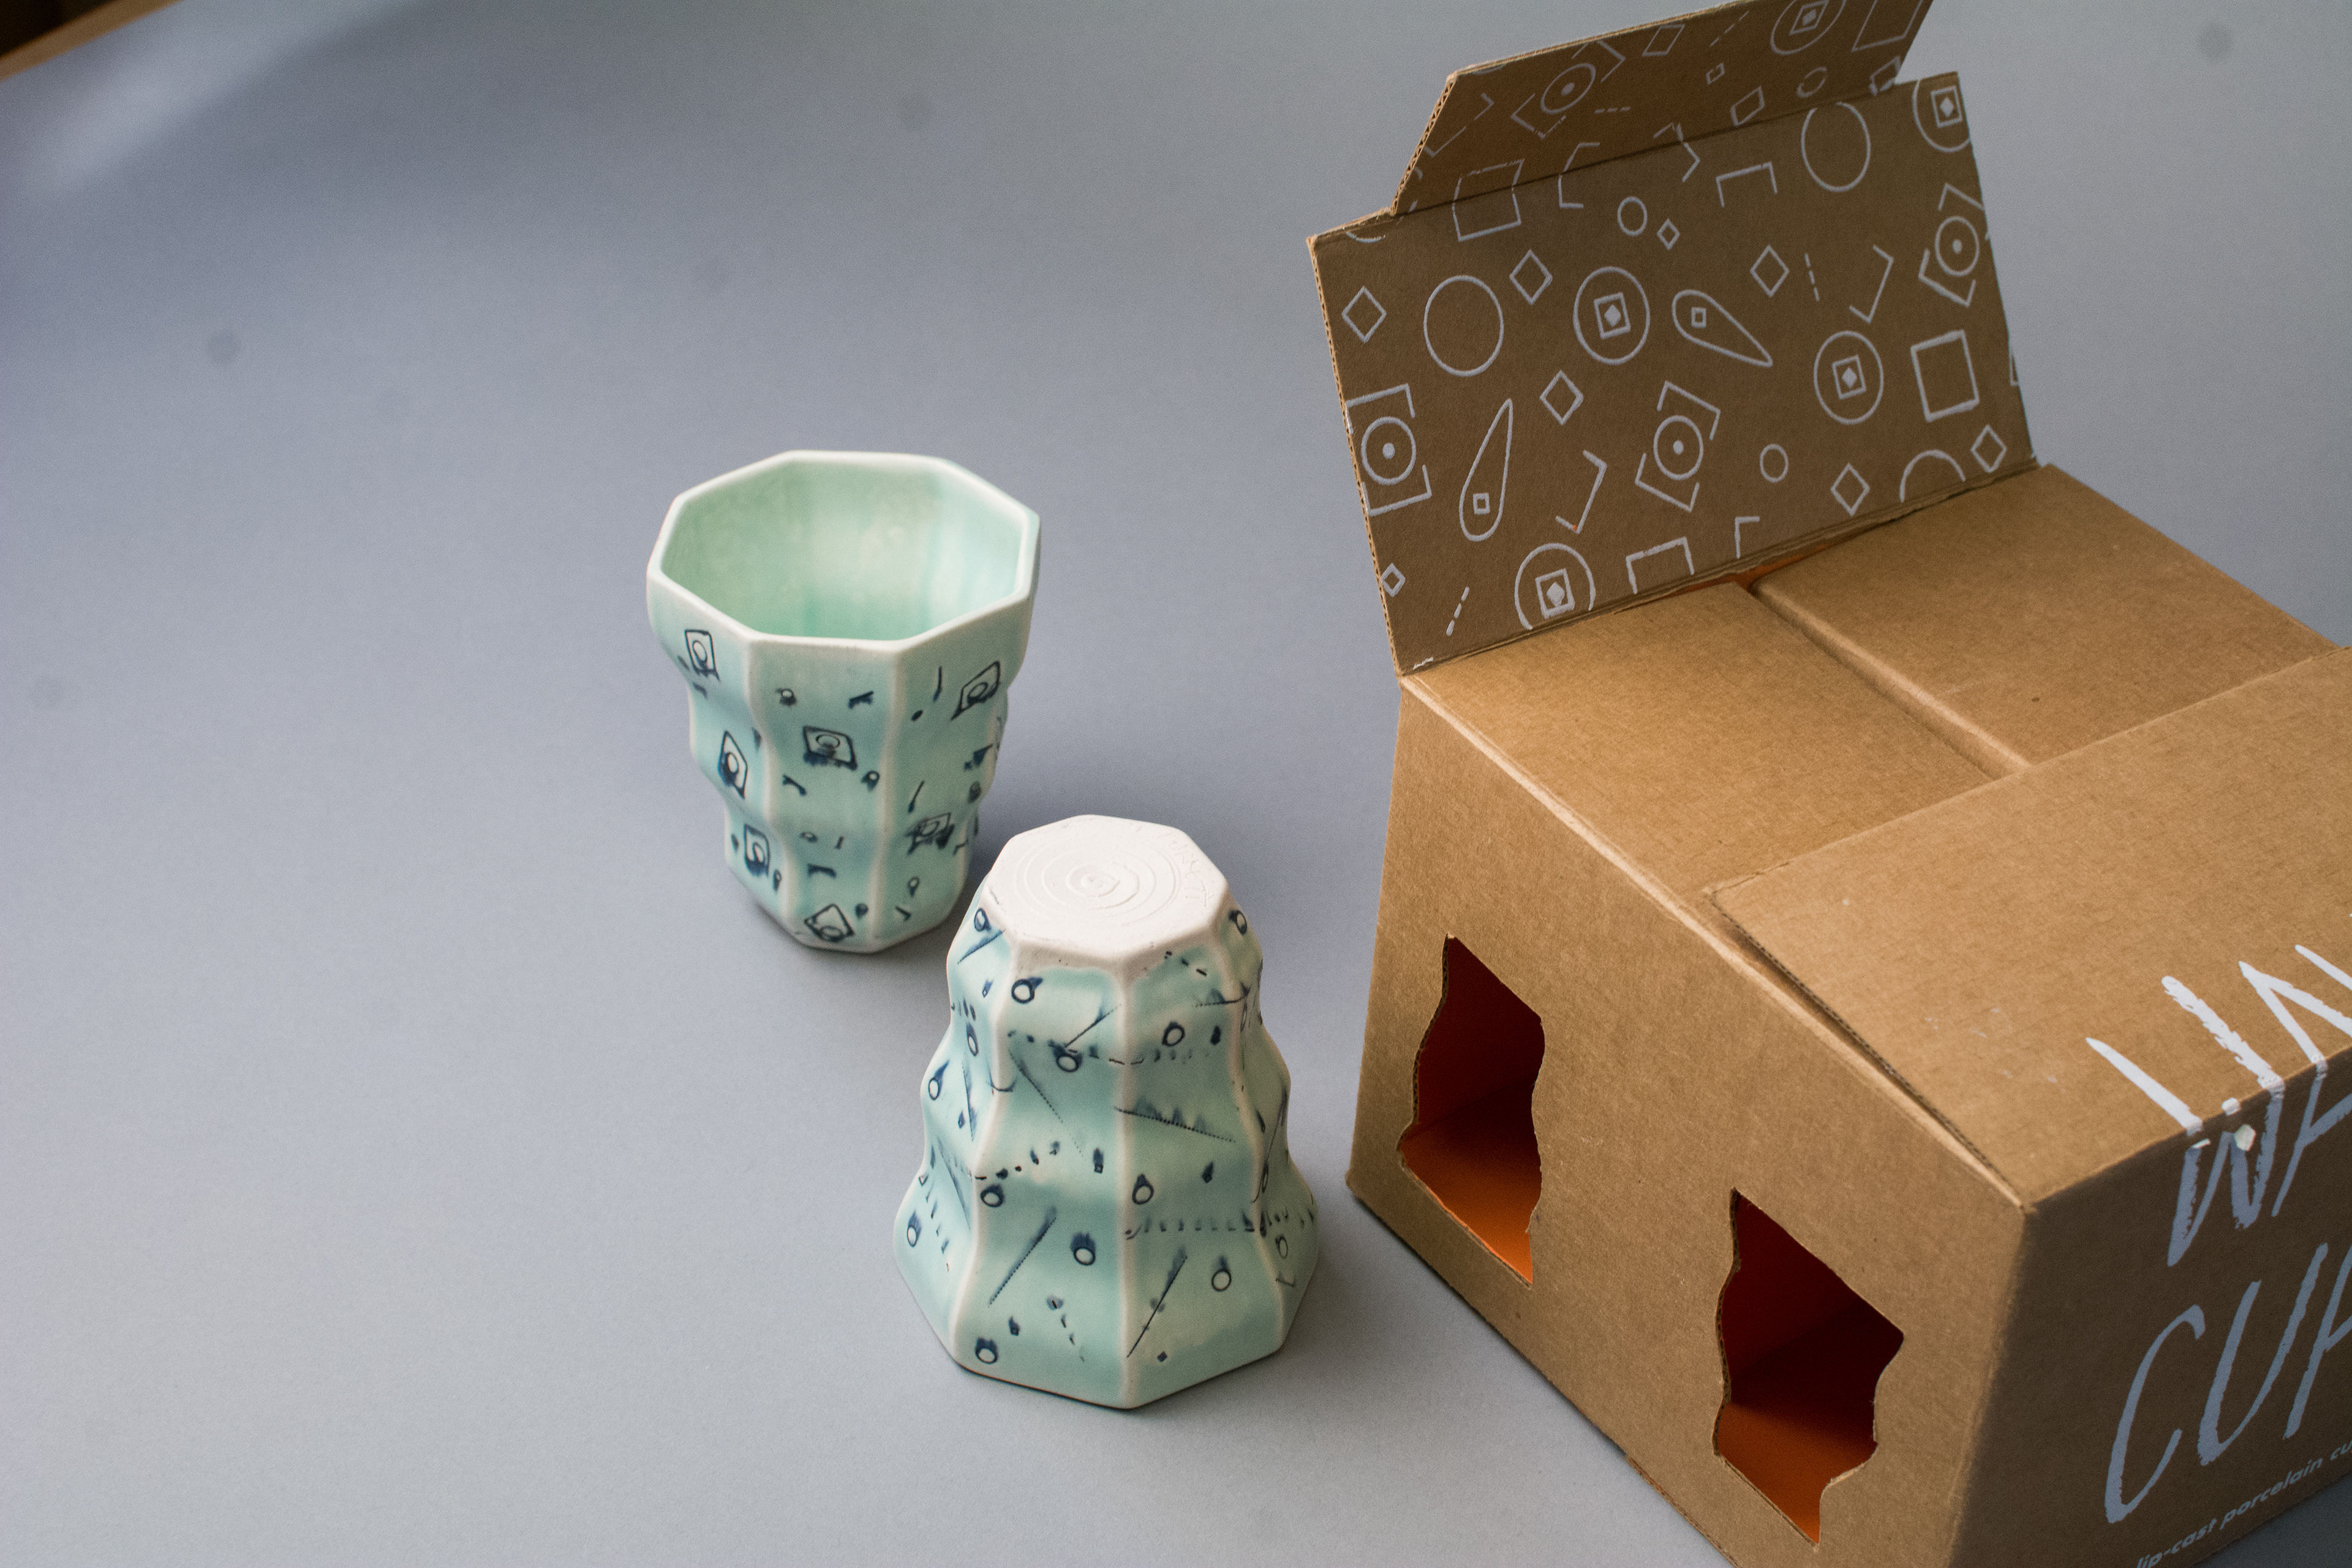 +The Abstract Geometric Designs On The Wave Cups Were Pieced